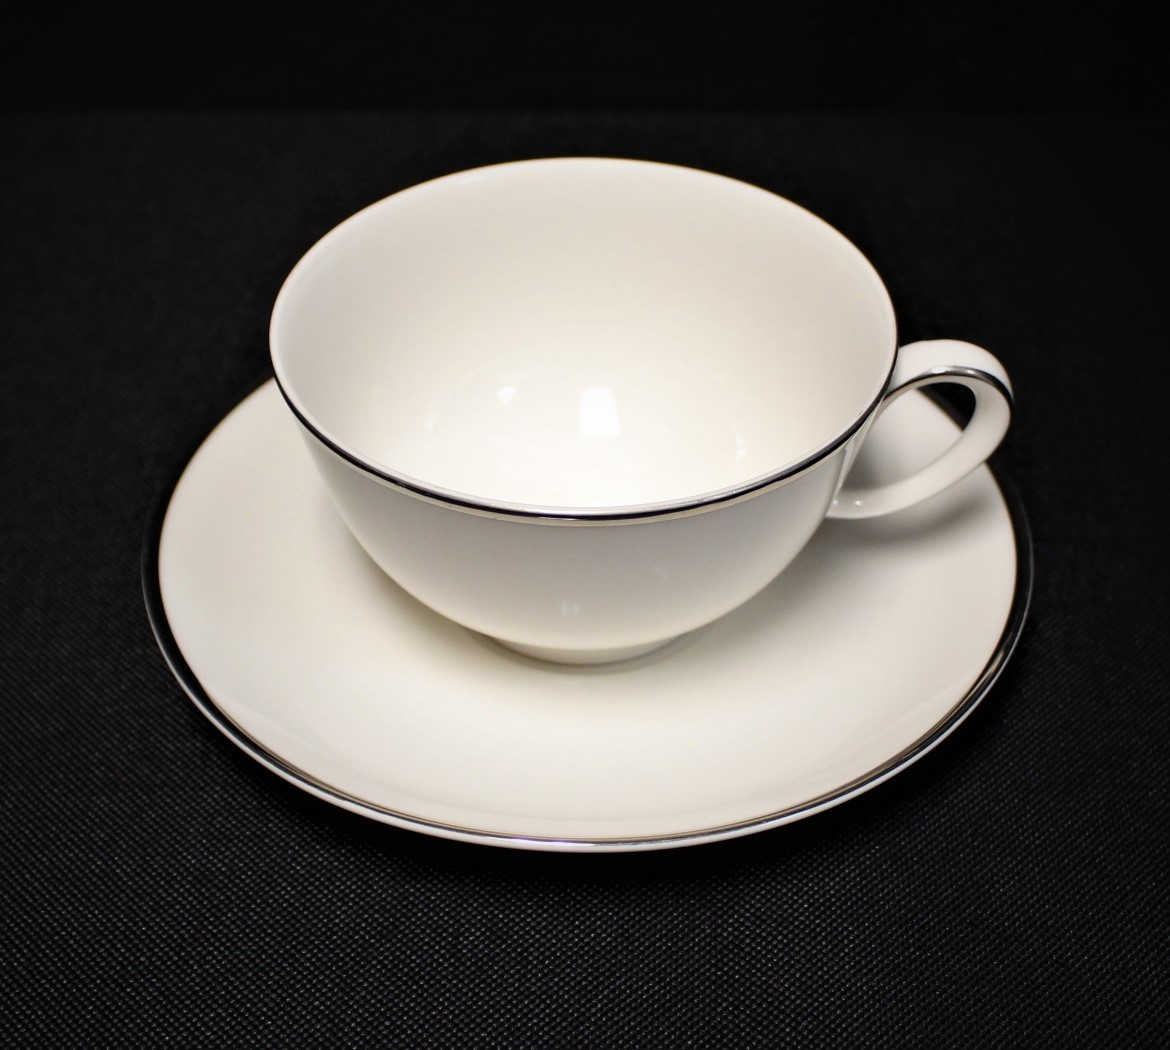 Noritake Ivonne 7522 Ivory China Cup & Saucer Plate Set w/ Platinum Trim